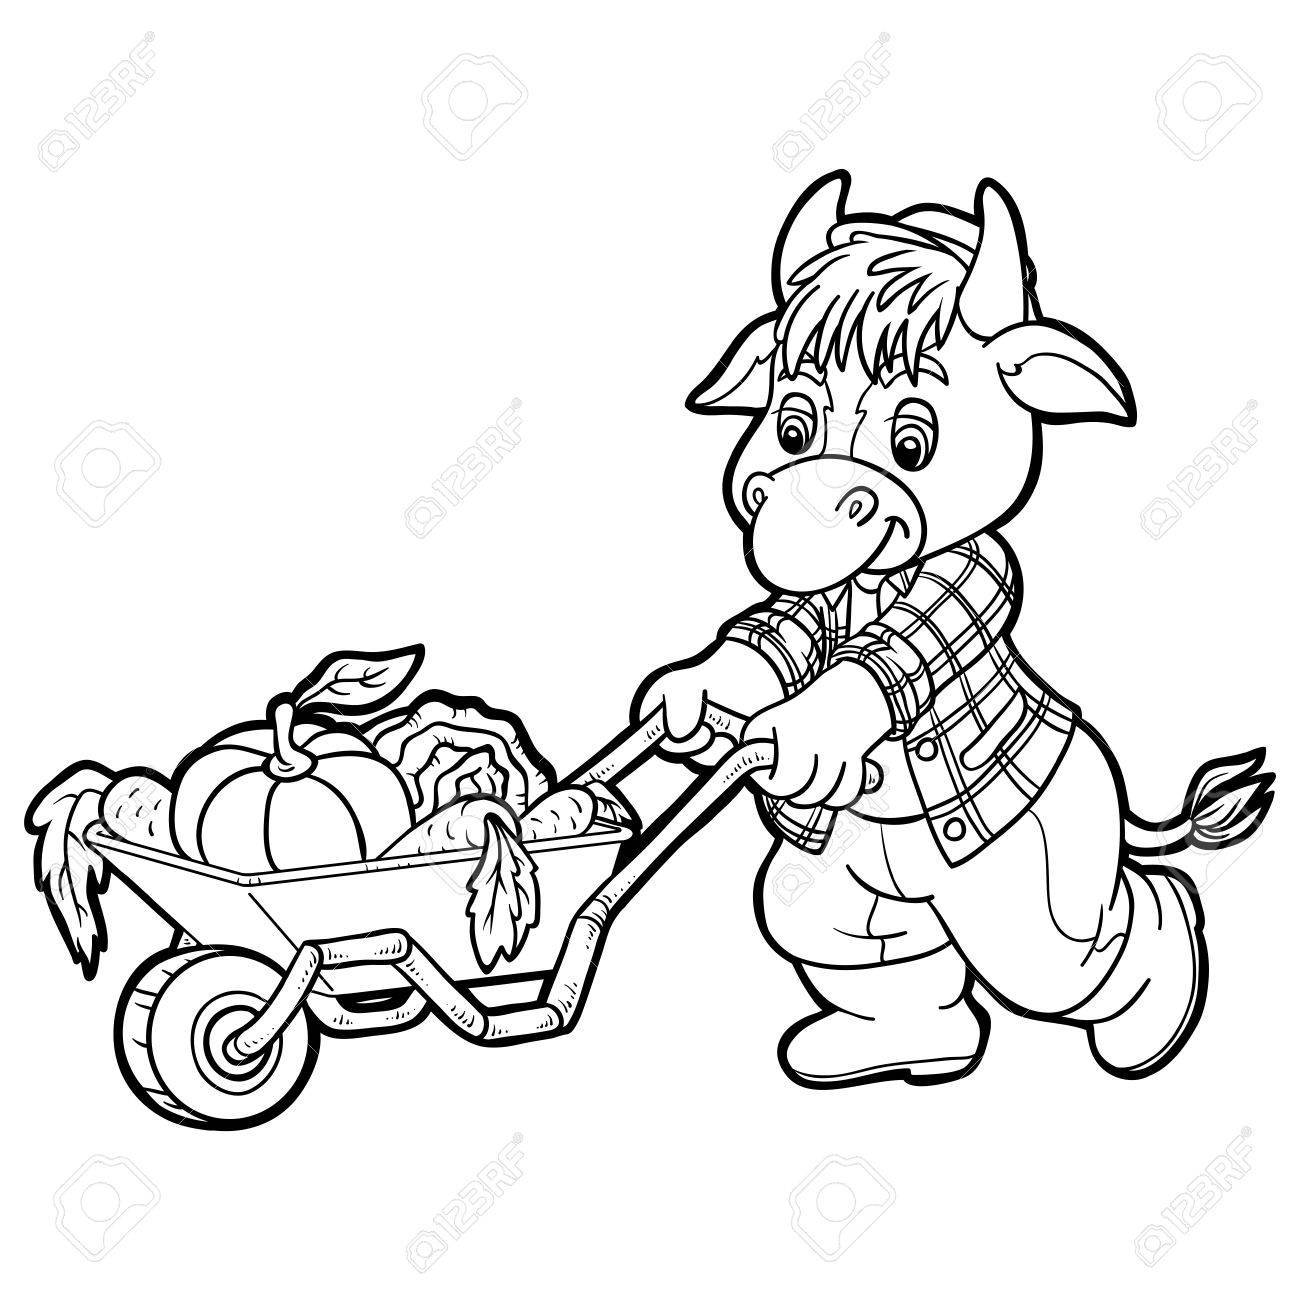 Coloring Book (cow) Royalty Free Cliparts, Vectors, And Stock ...